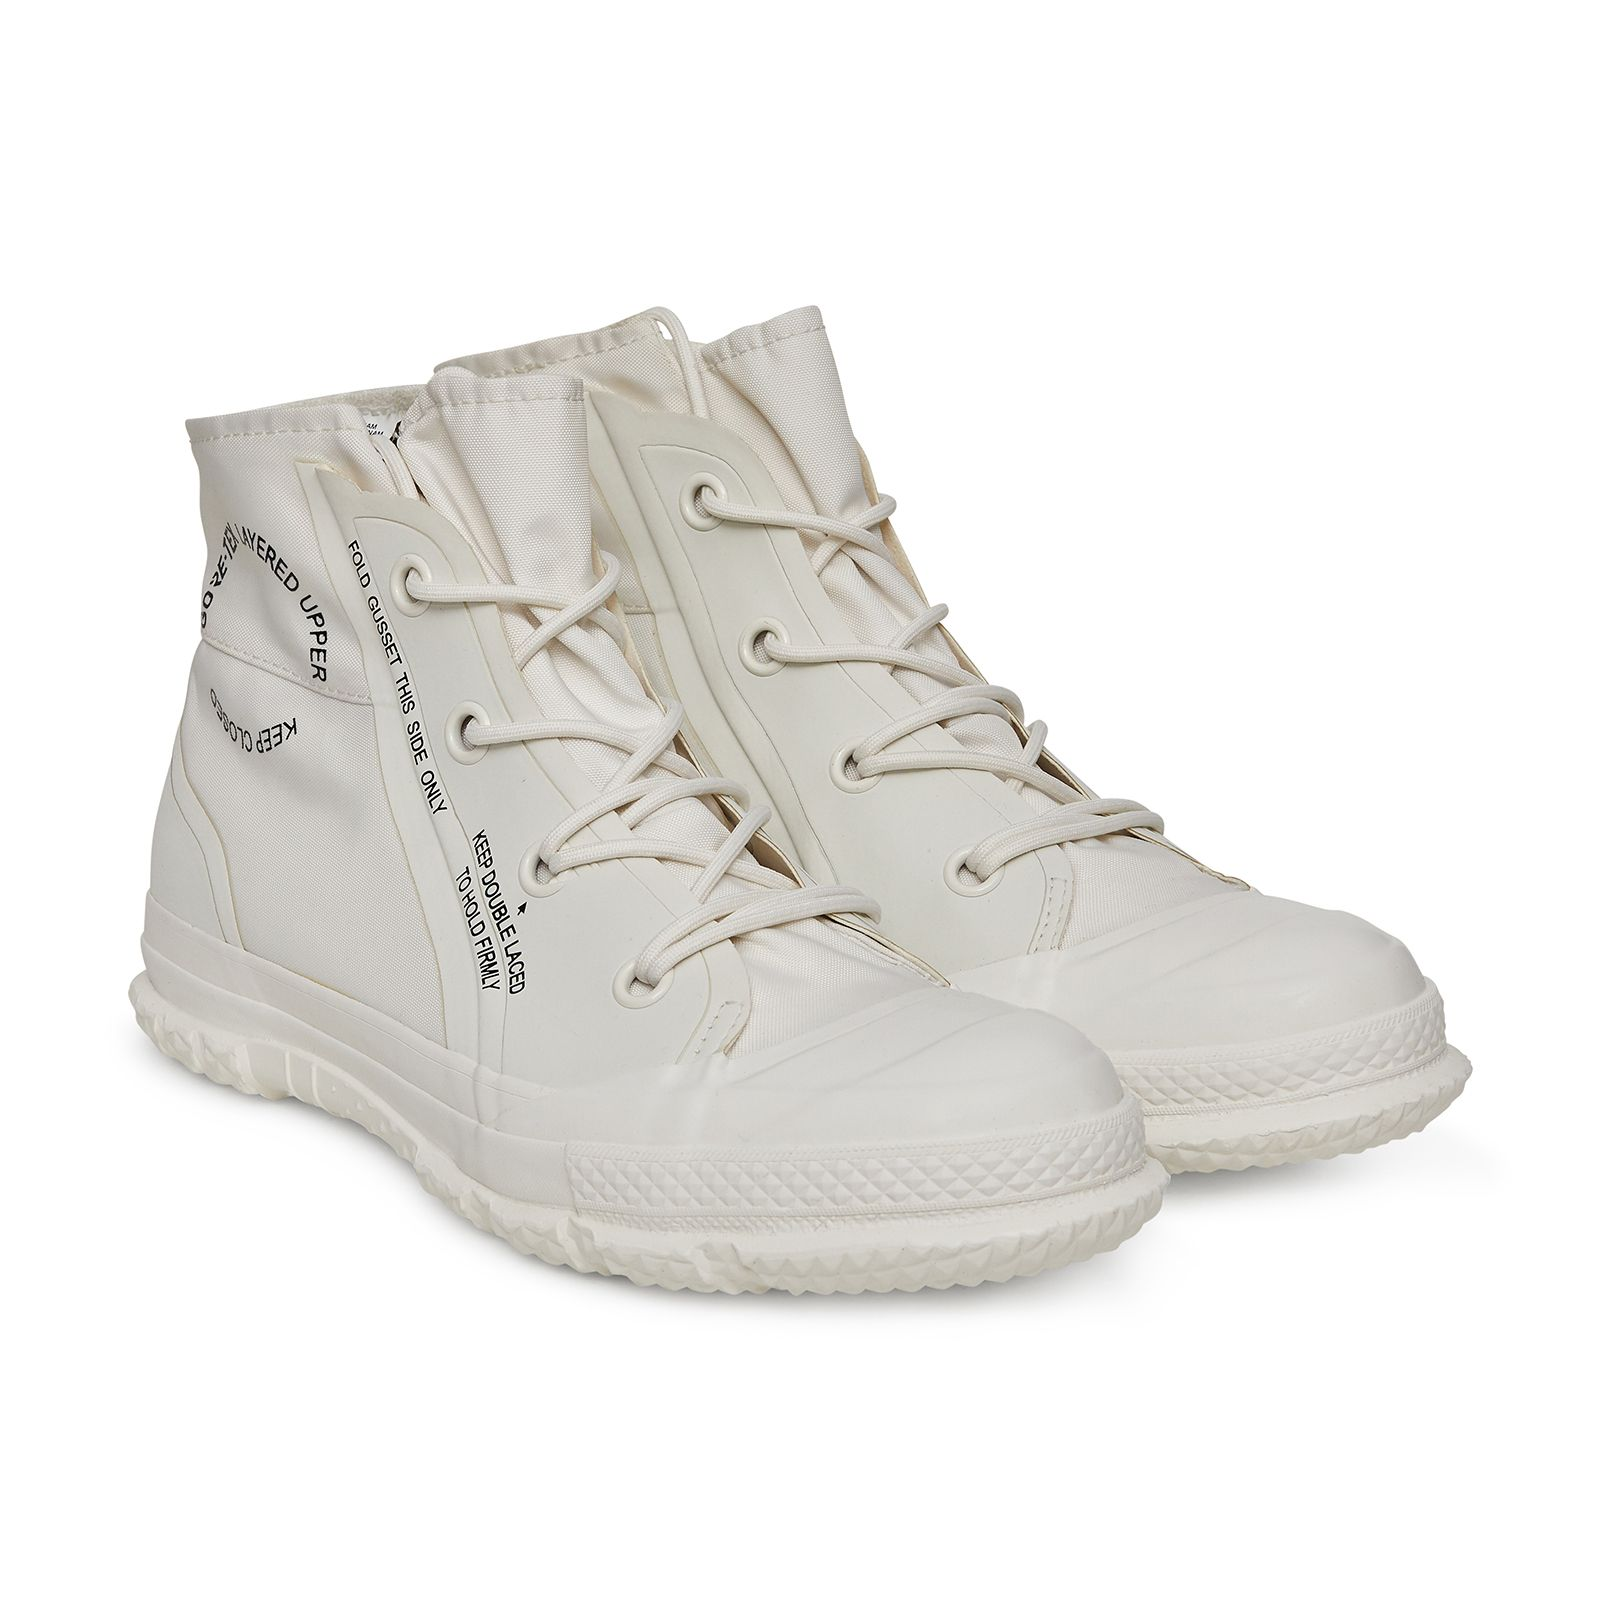 a6564a96a45 GORE-TEX® Chuck Taylor '70 MC18 Sneakers | INSPIRATION: Sneaks. in ...